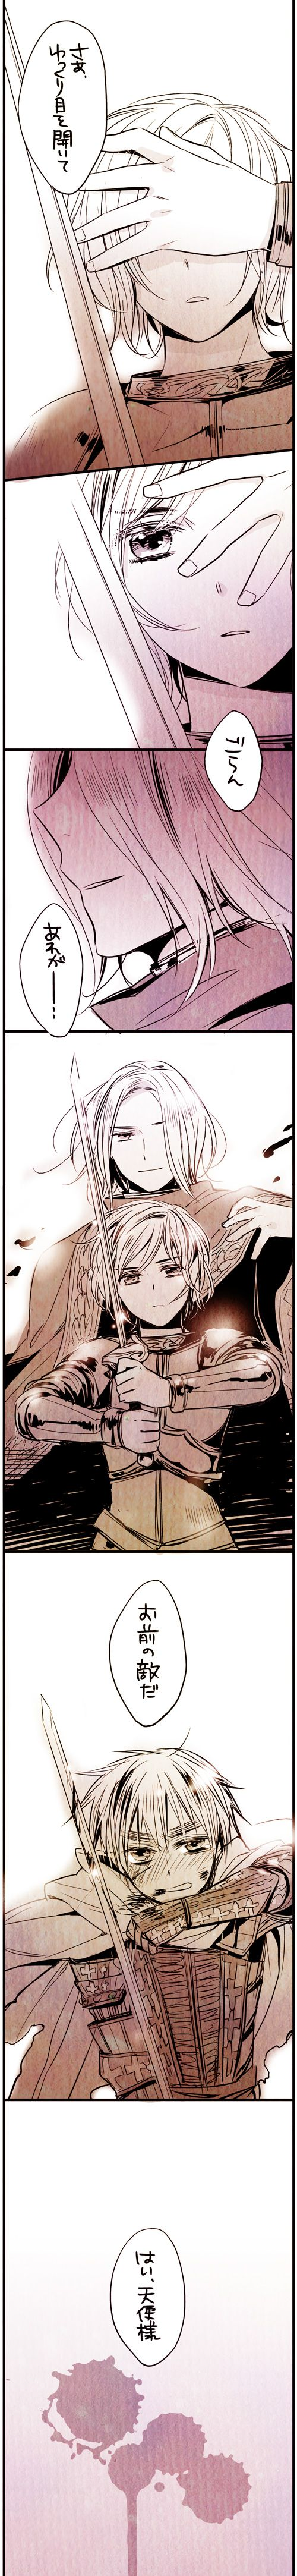 """Francis, Jean d'Arc, and Arthur - It says """" Now open your eyes and look over there. That is your enemy. ( France ) Yes Mr. Angel ( Jean d' Arc ) """" - Art by Fuji"""